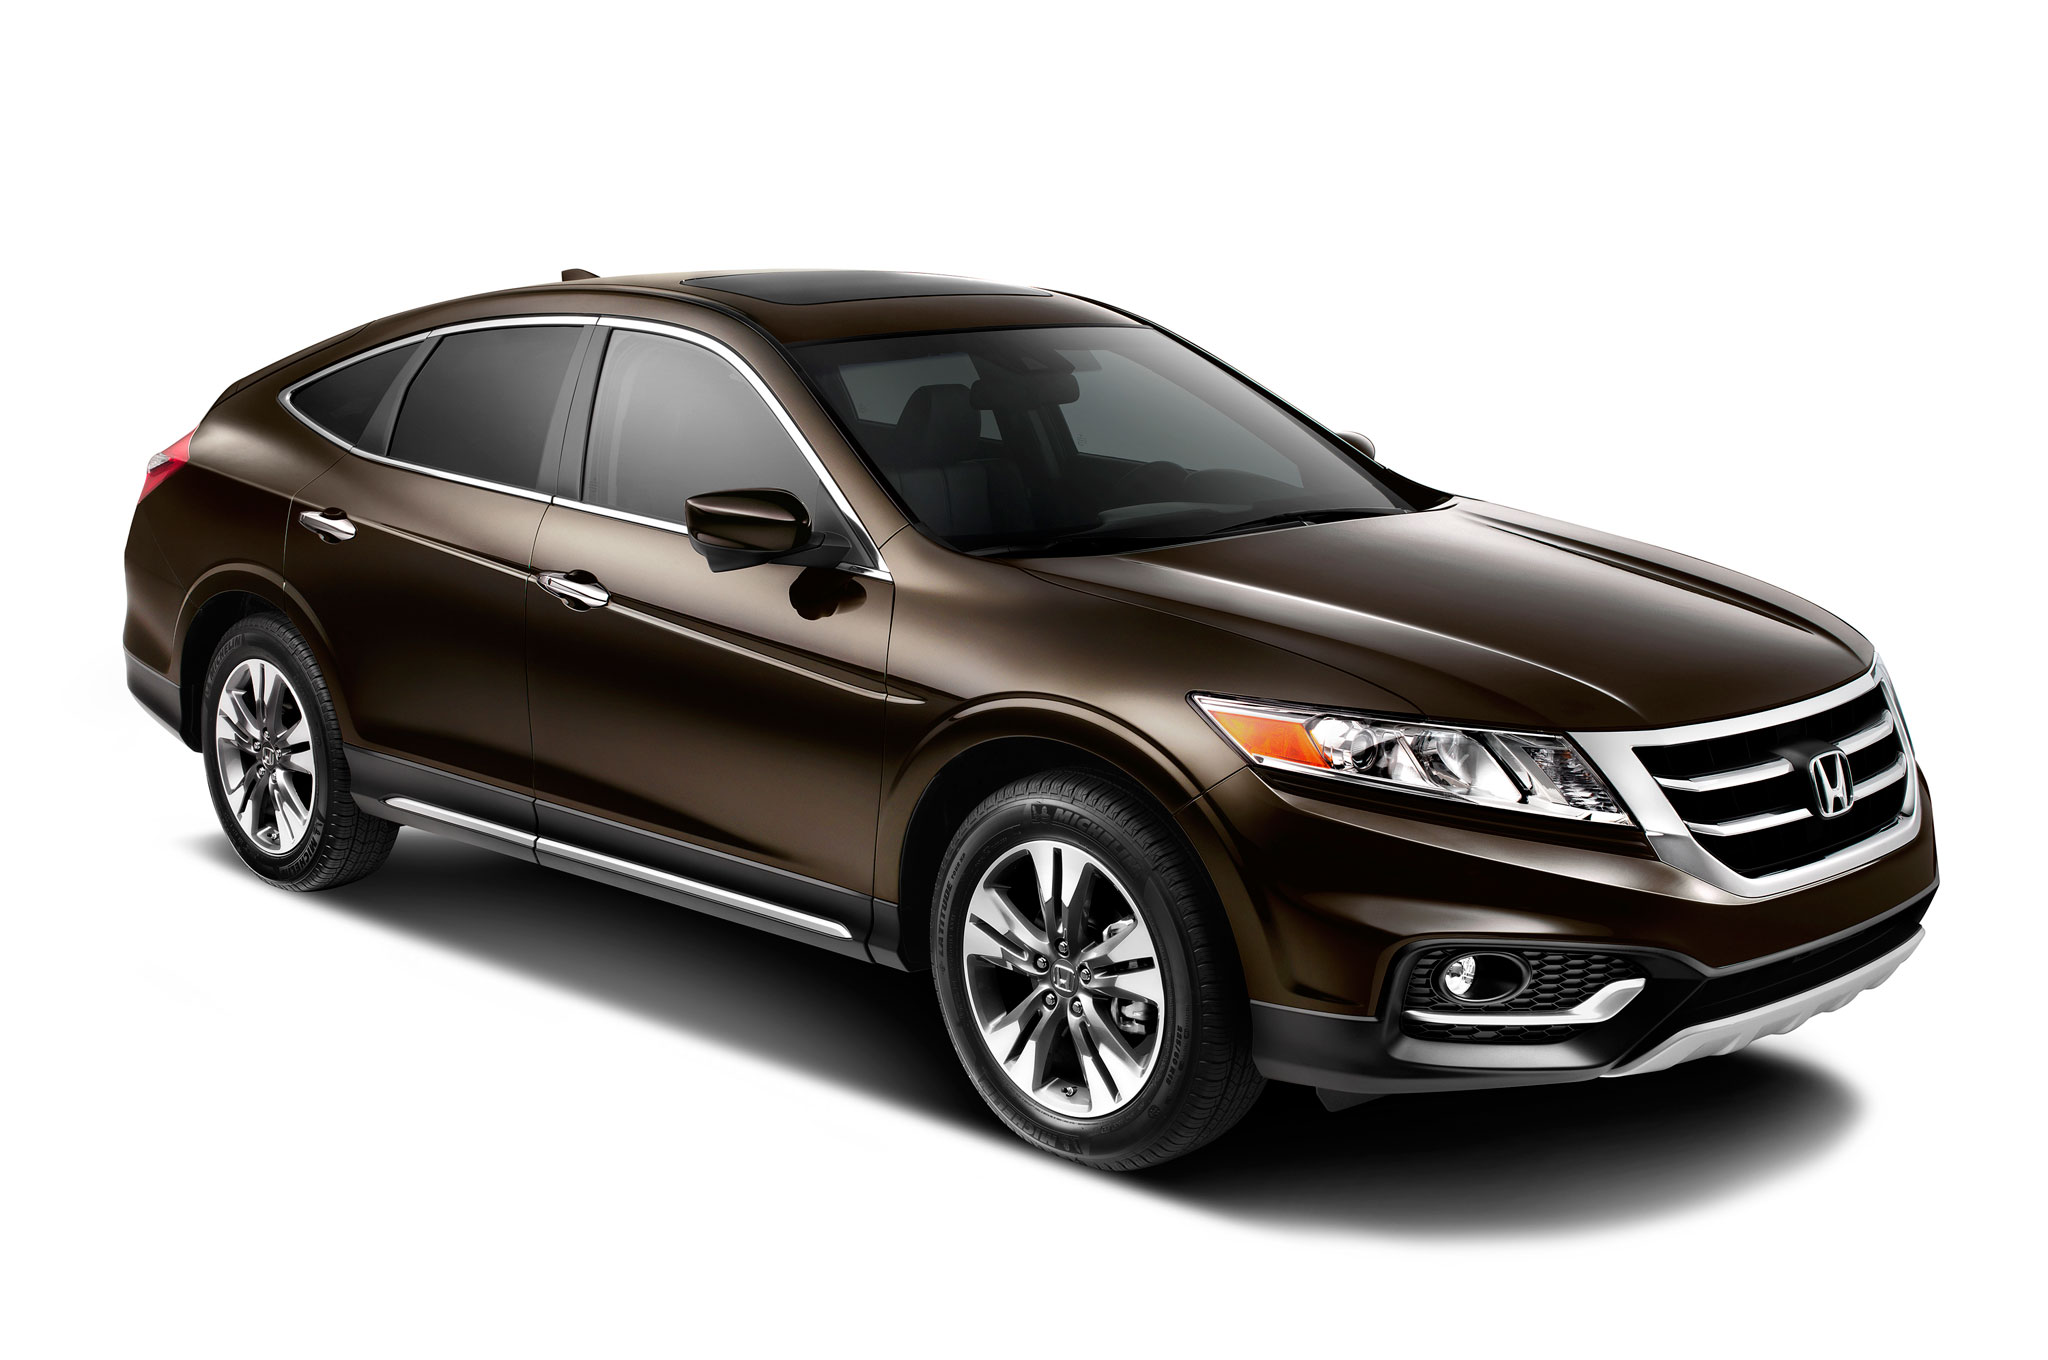 Honda Crosstour Headed To The Chopping Block After 2015 Model Year